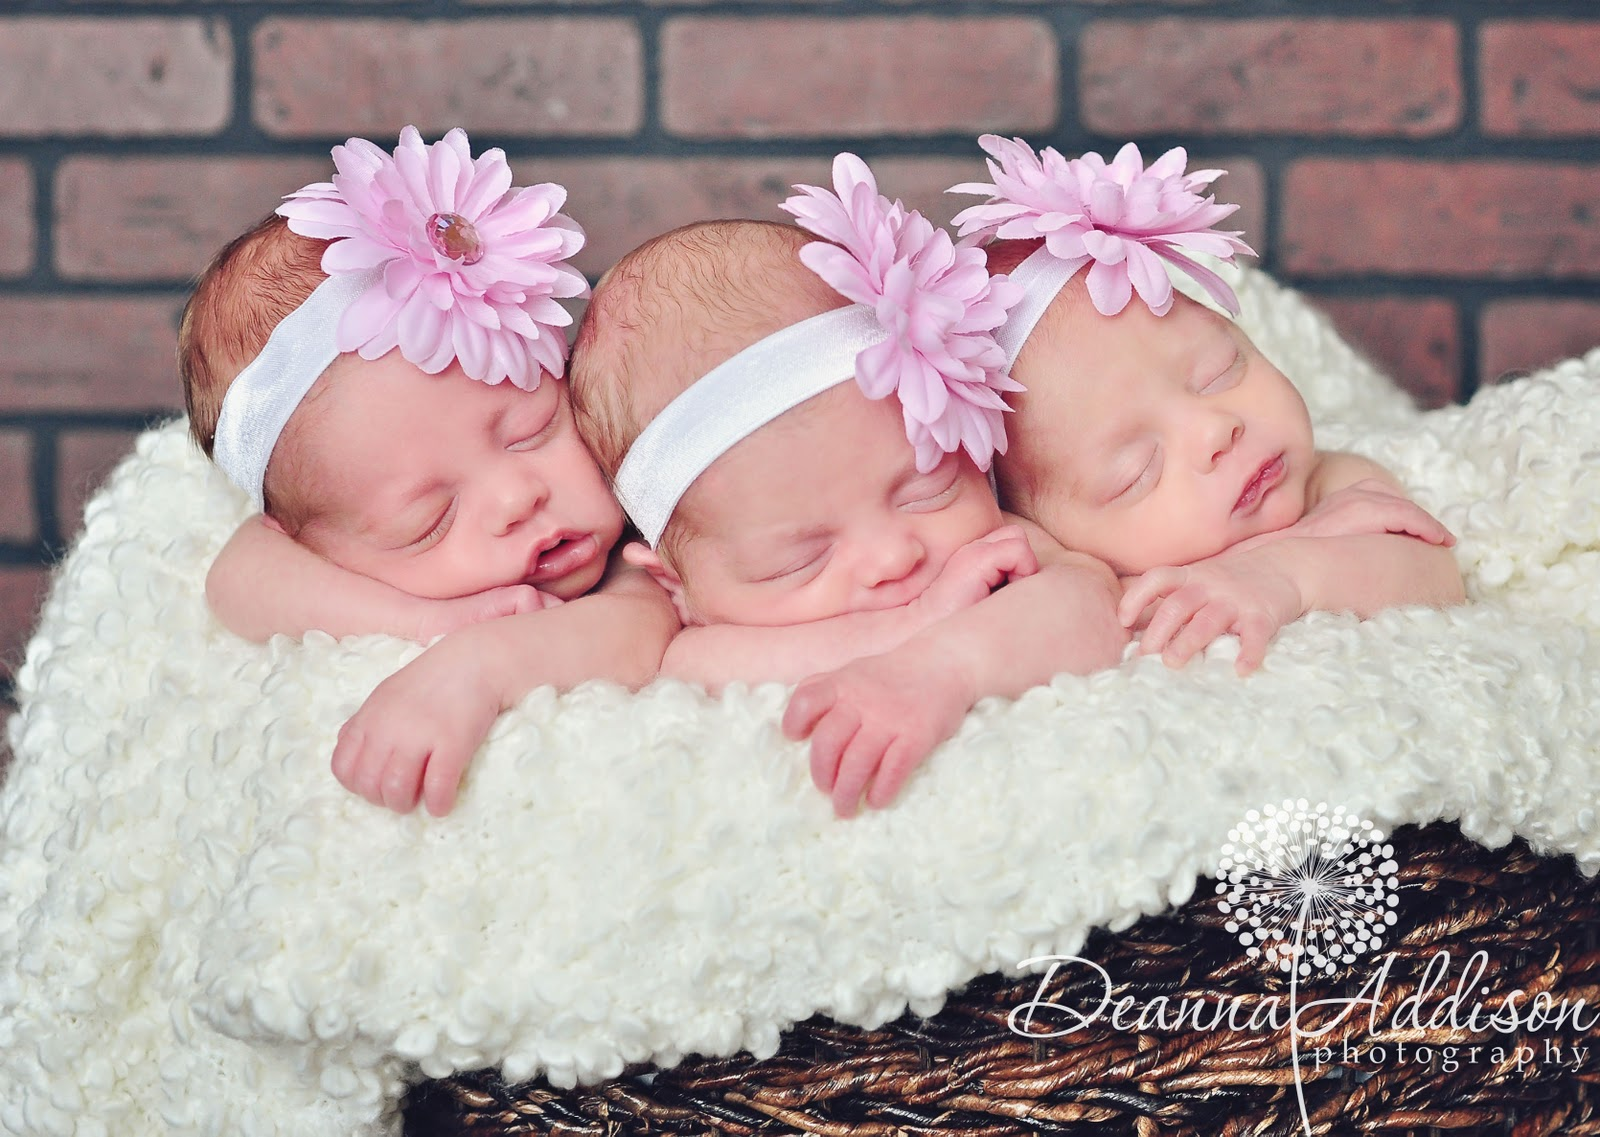 Deanna Addison Photography: The Abbe Triplets - Newborn